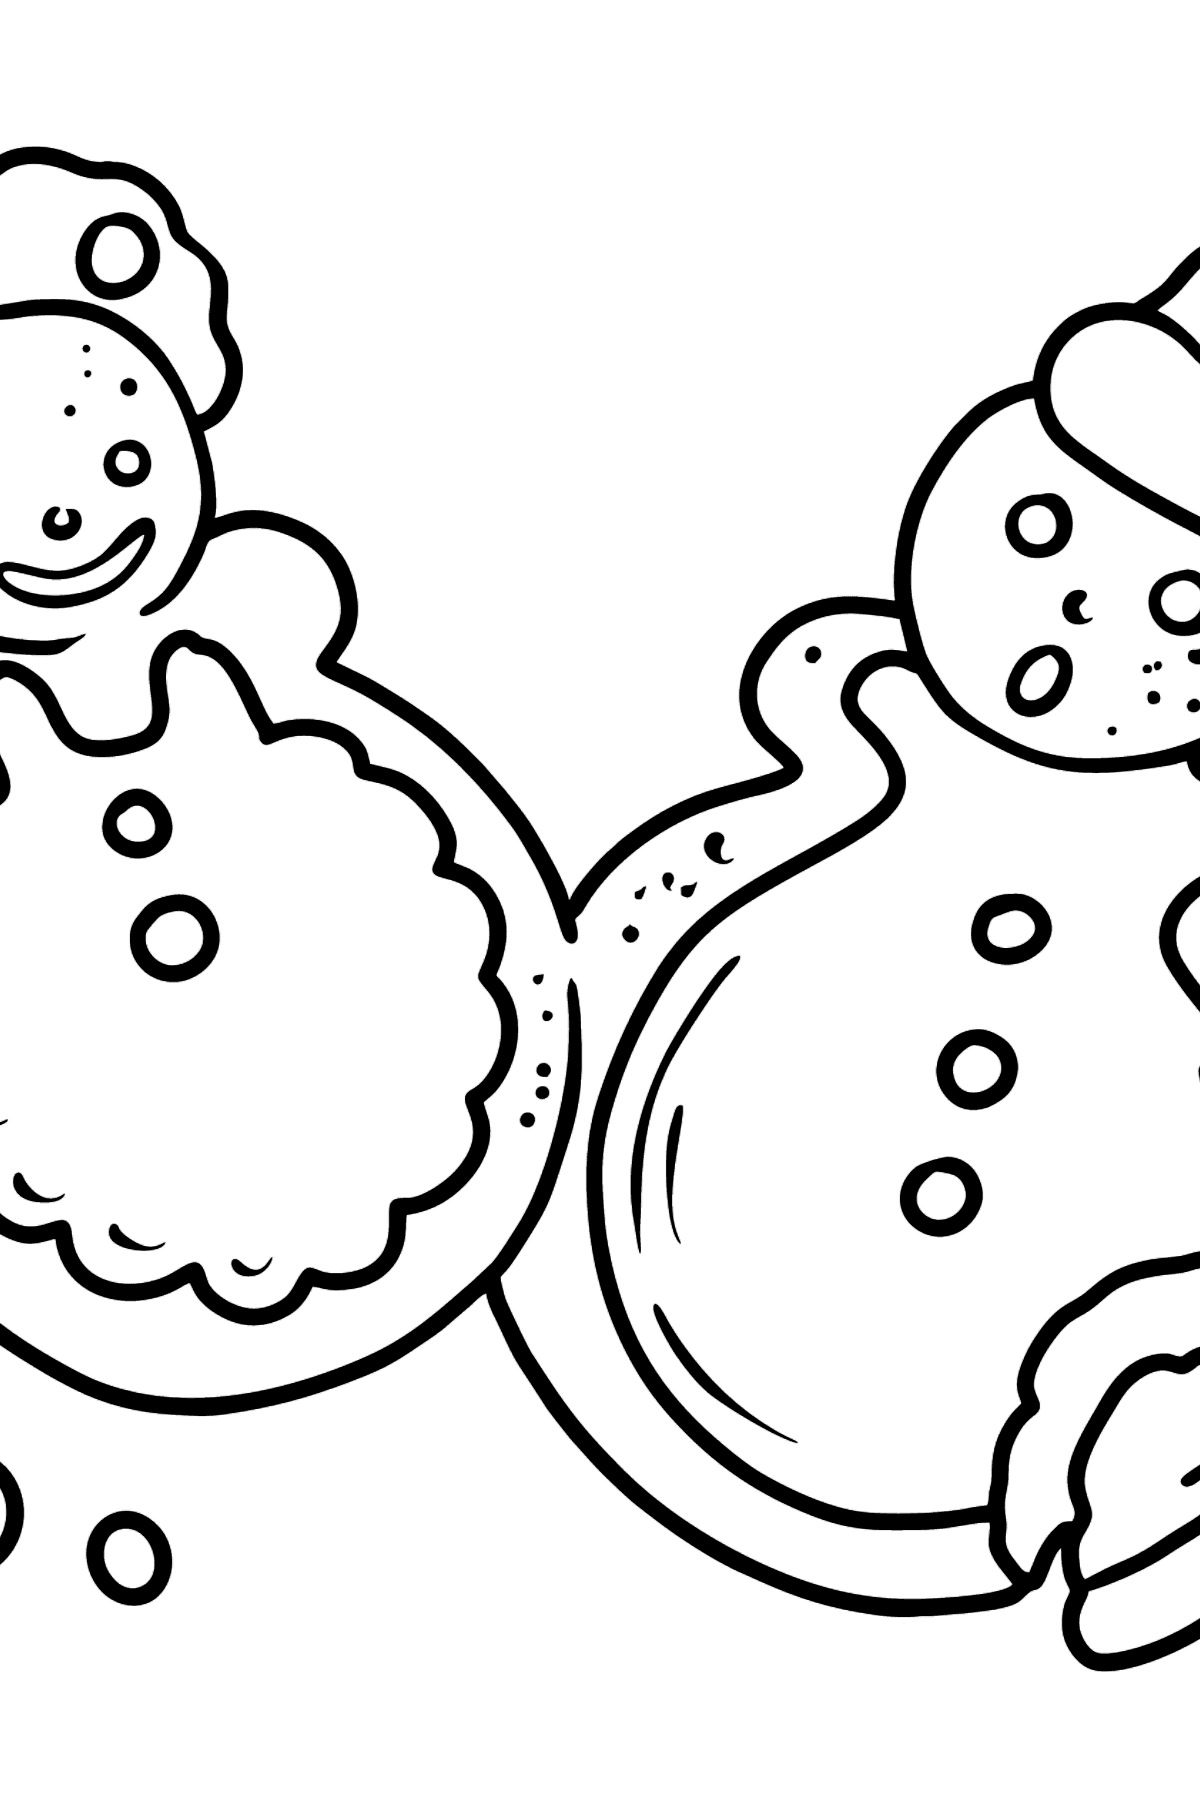 Gingerbread coloring page - Coloring Pages for Kids